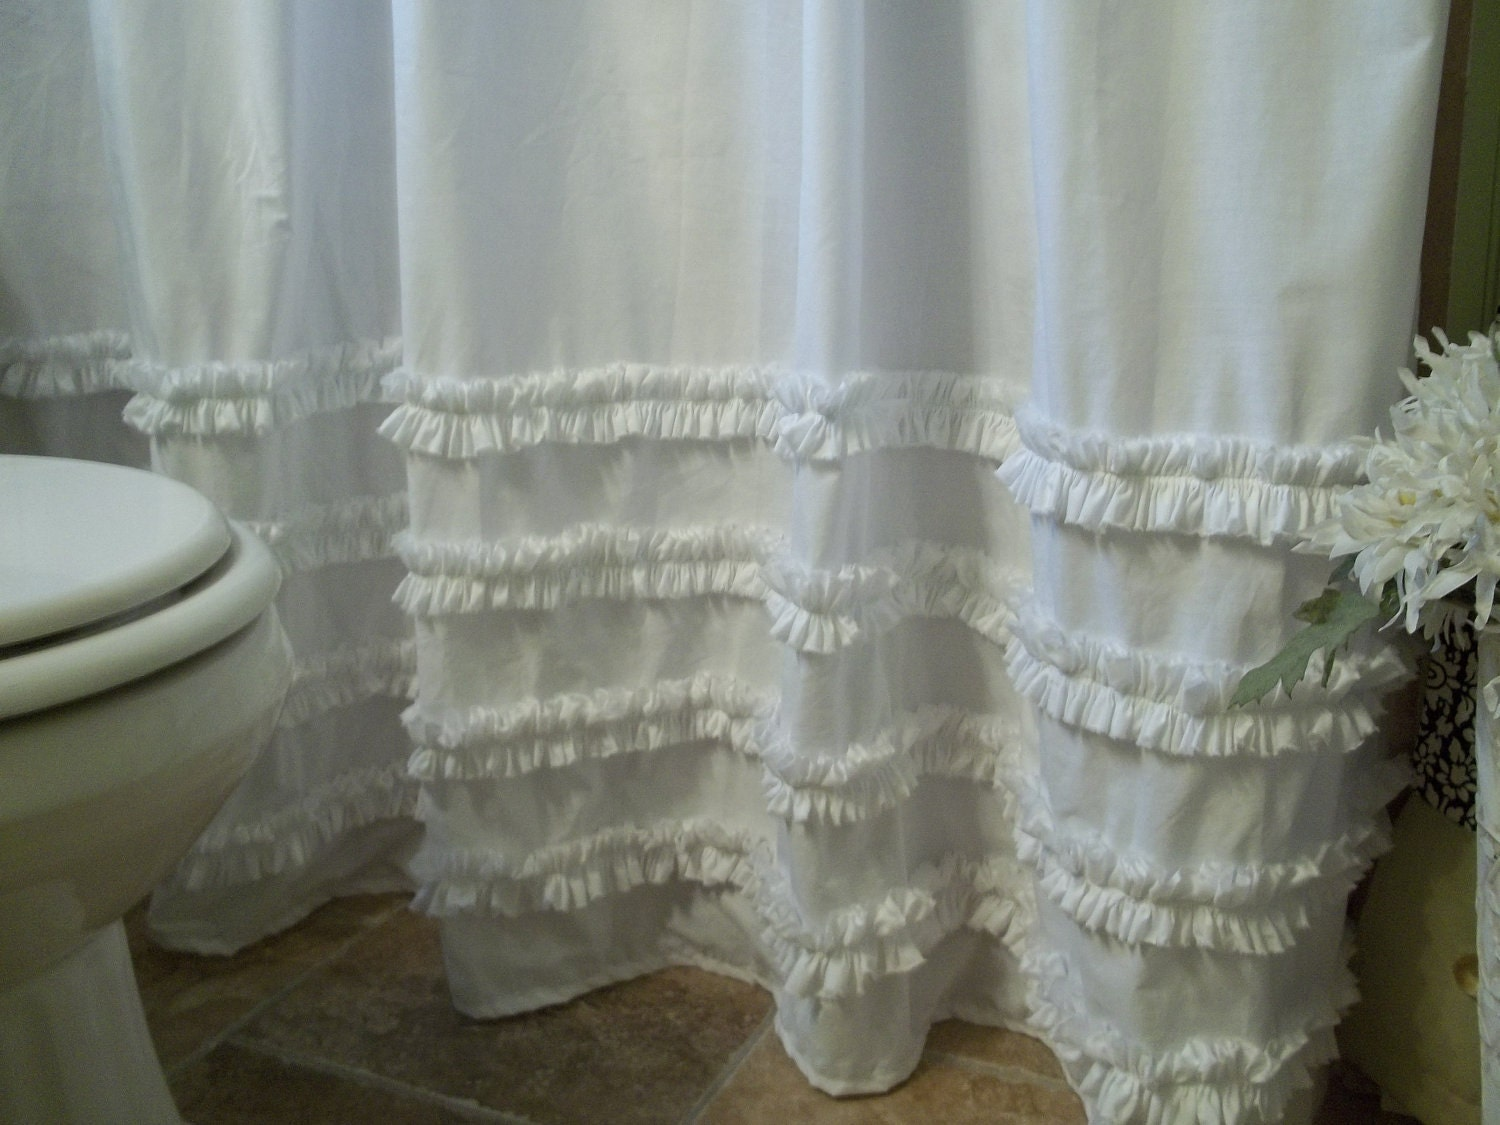 Country ruffled shower curtains - White Cotton Ruffle Shower Curtain White Cotton Ruffles Shower Curtain Zoom